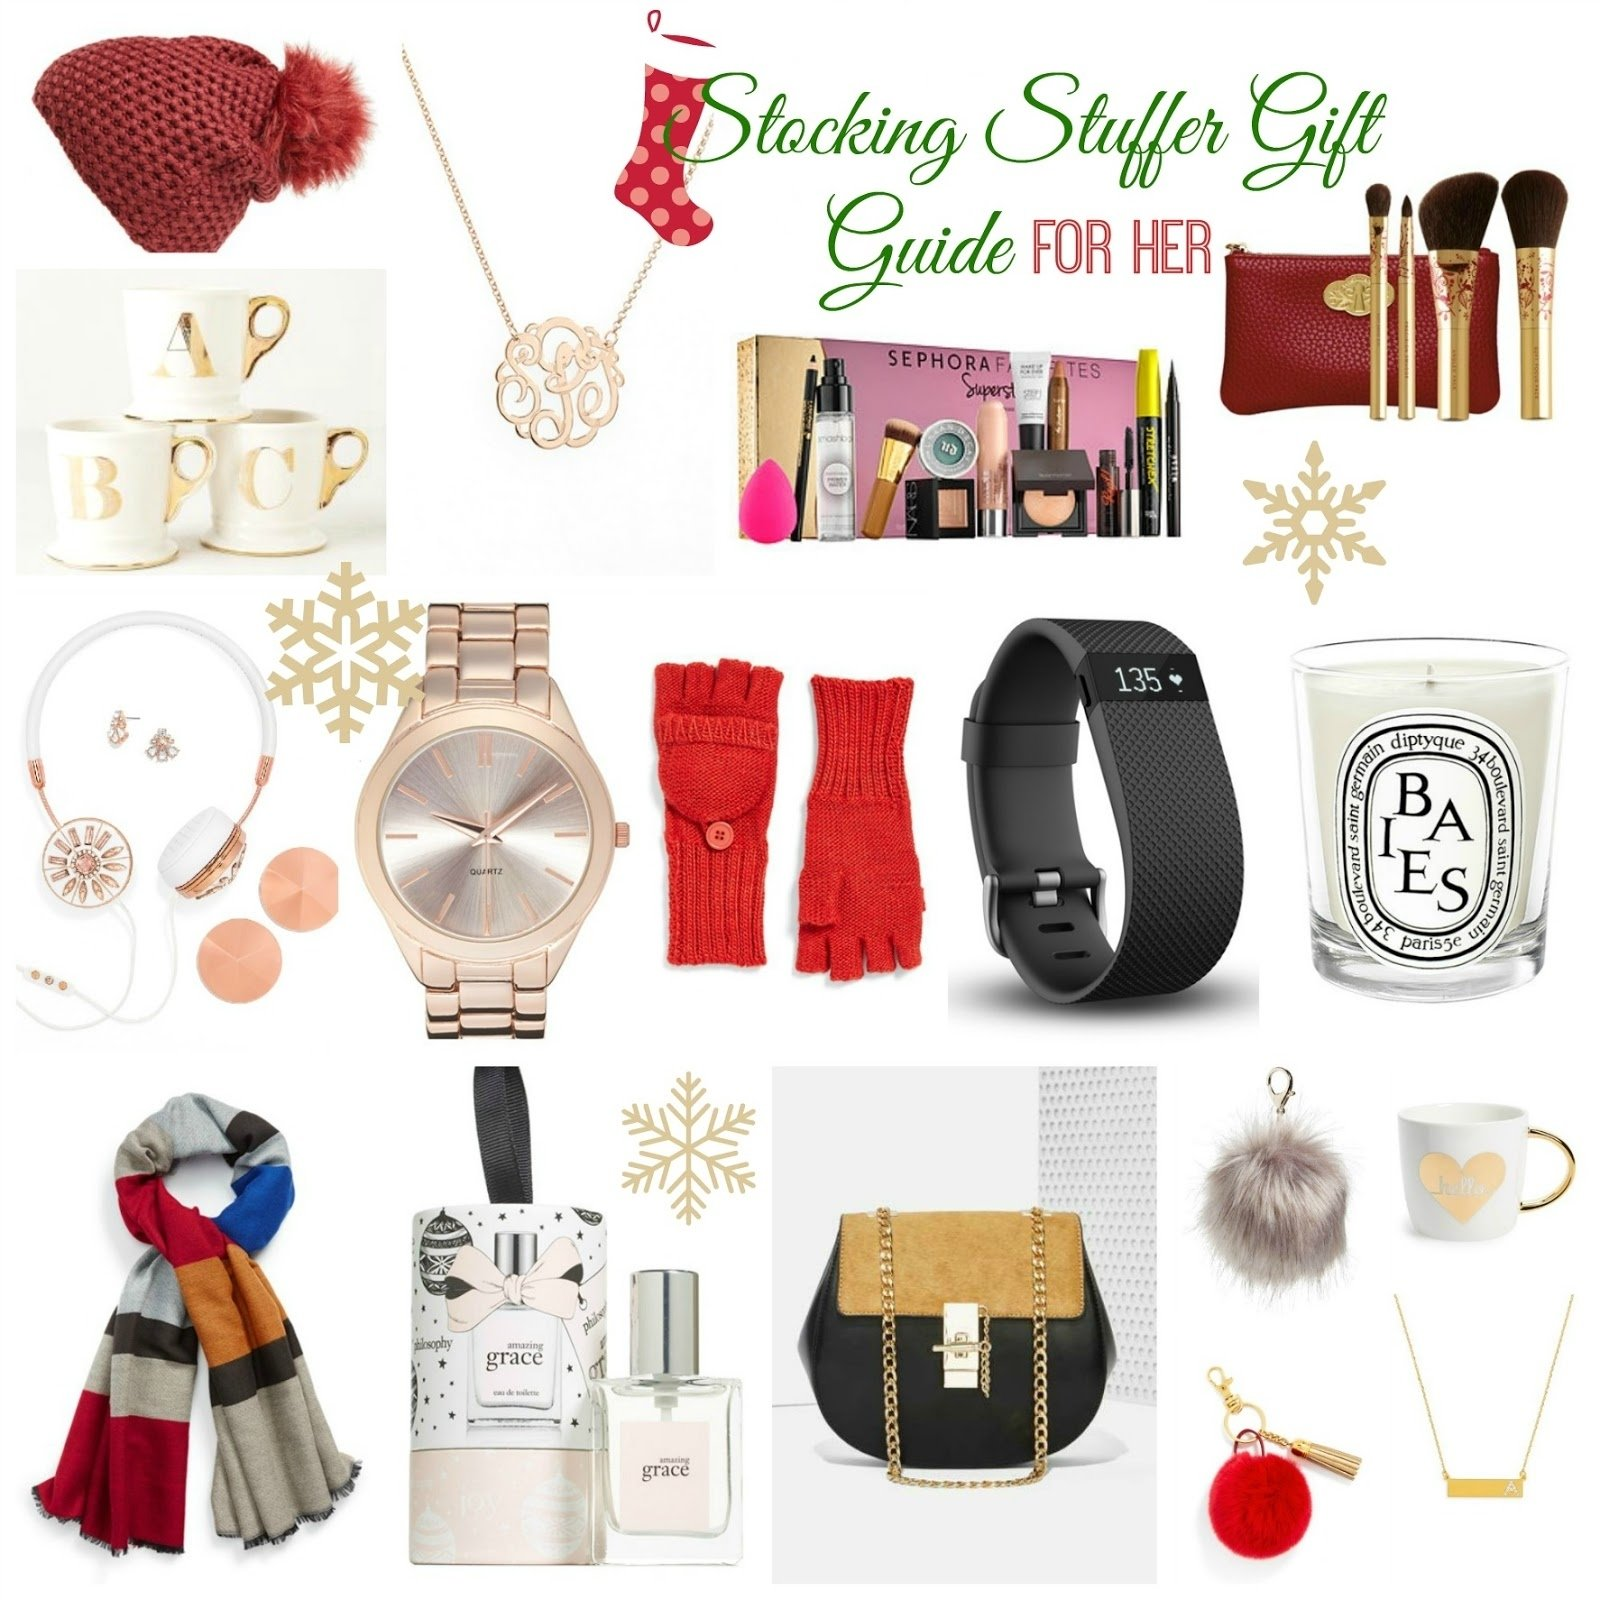 stocking stuffer ideas for her - kiss me darling